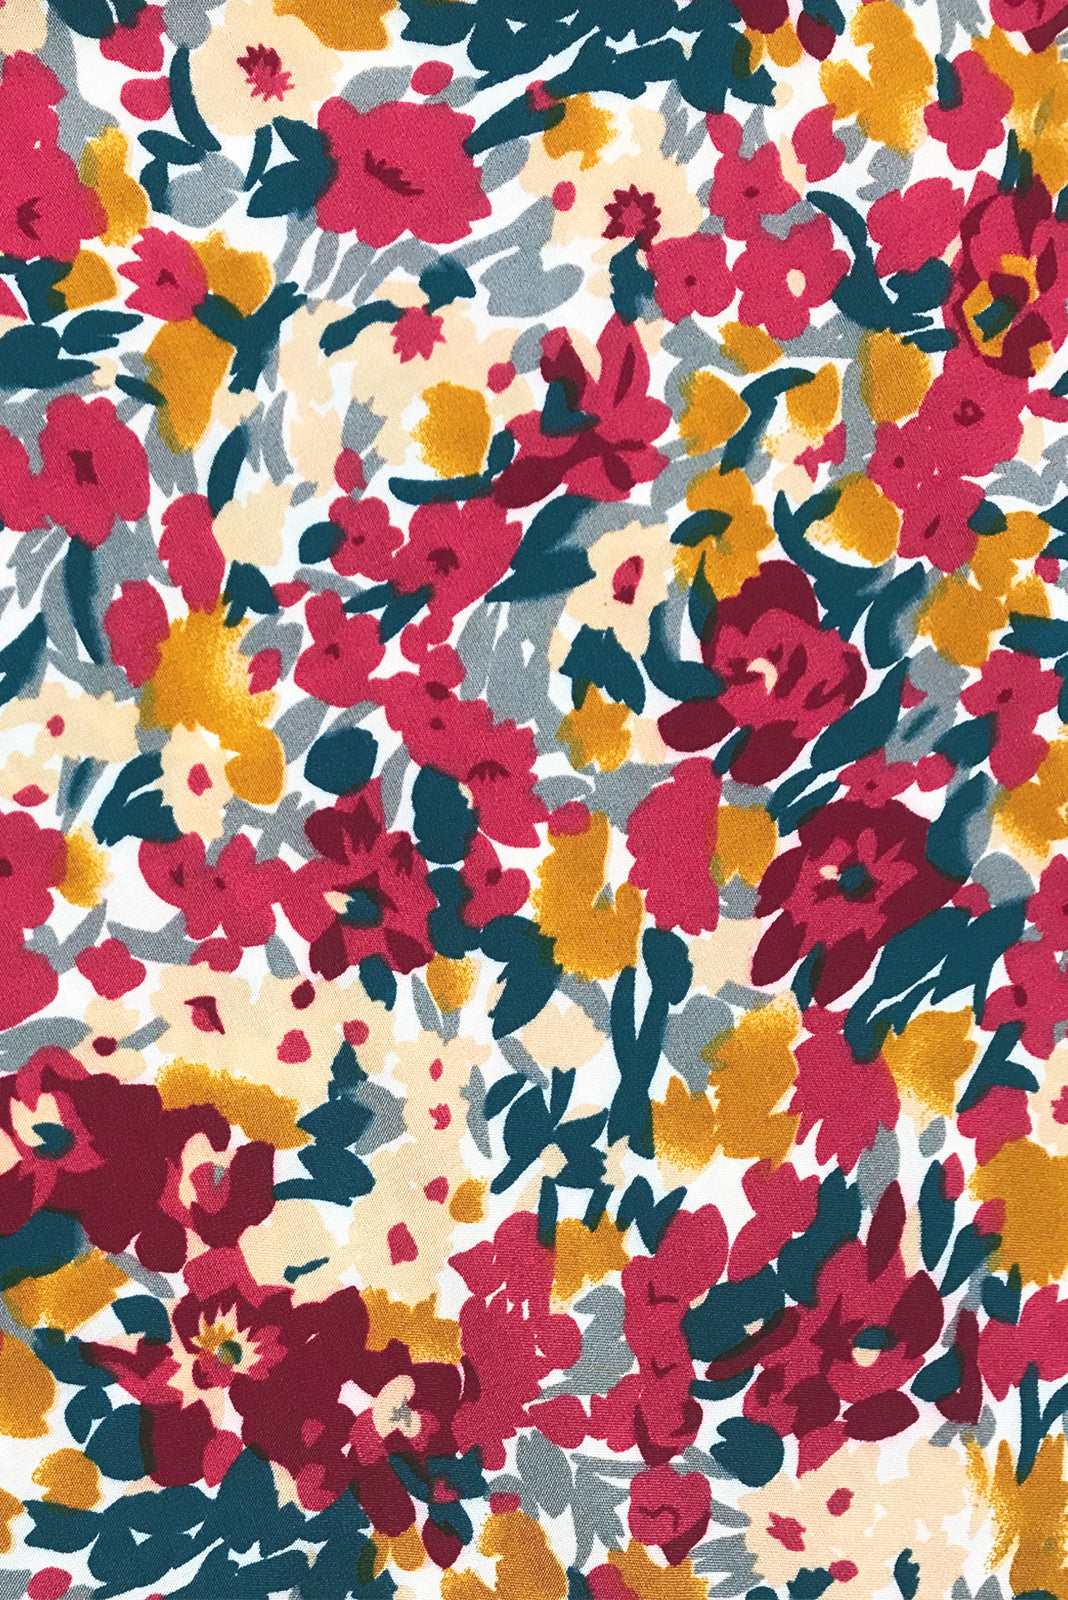 Fabric swatch of Narah Red Yves Maxi Skirt comes in woven 100% rayon in Vibrant multicoloured confetti floral print.